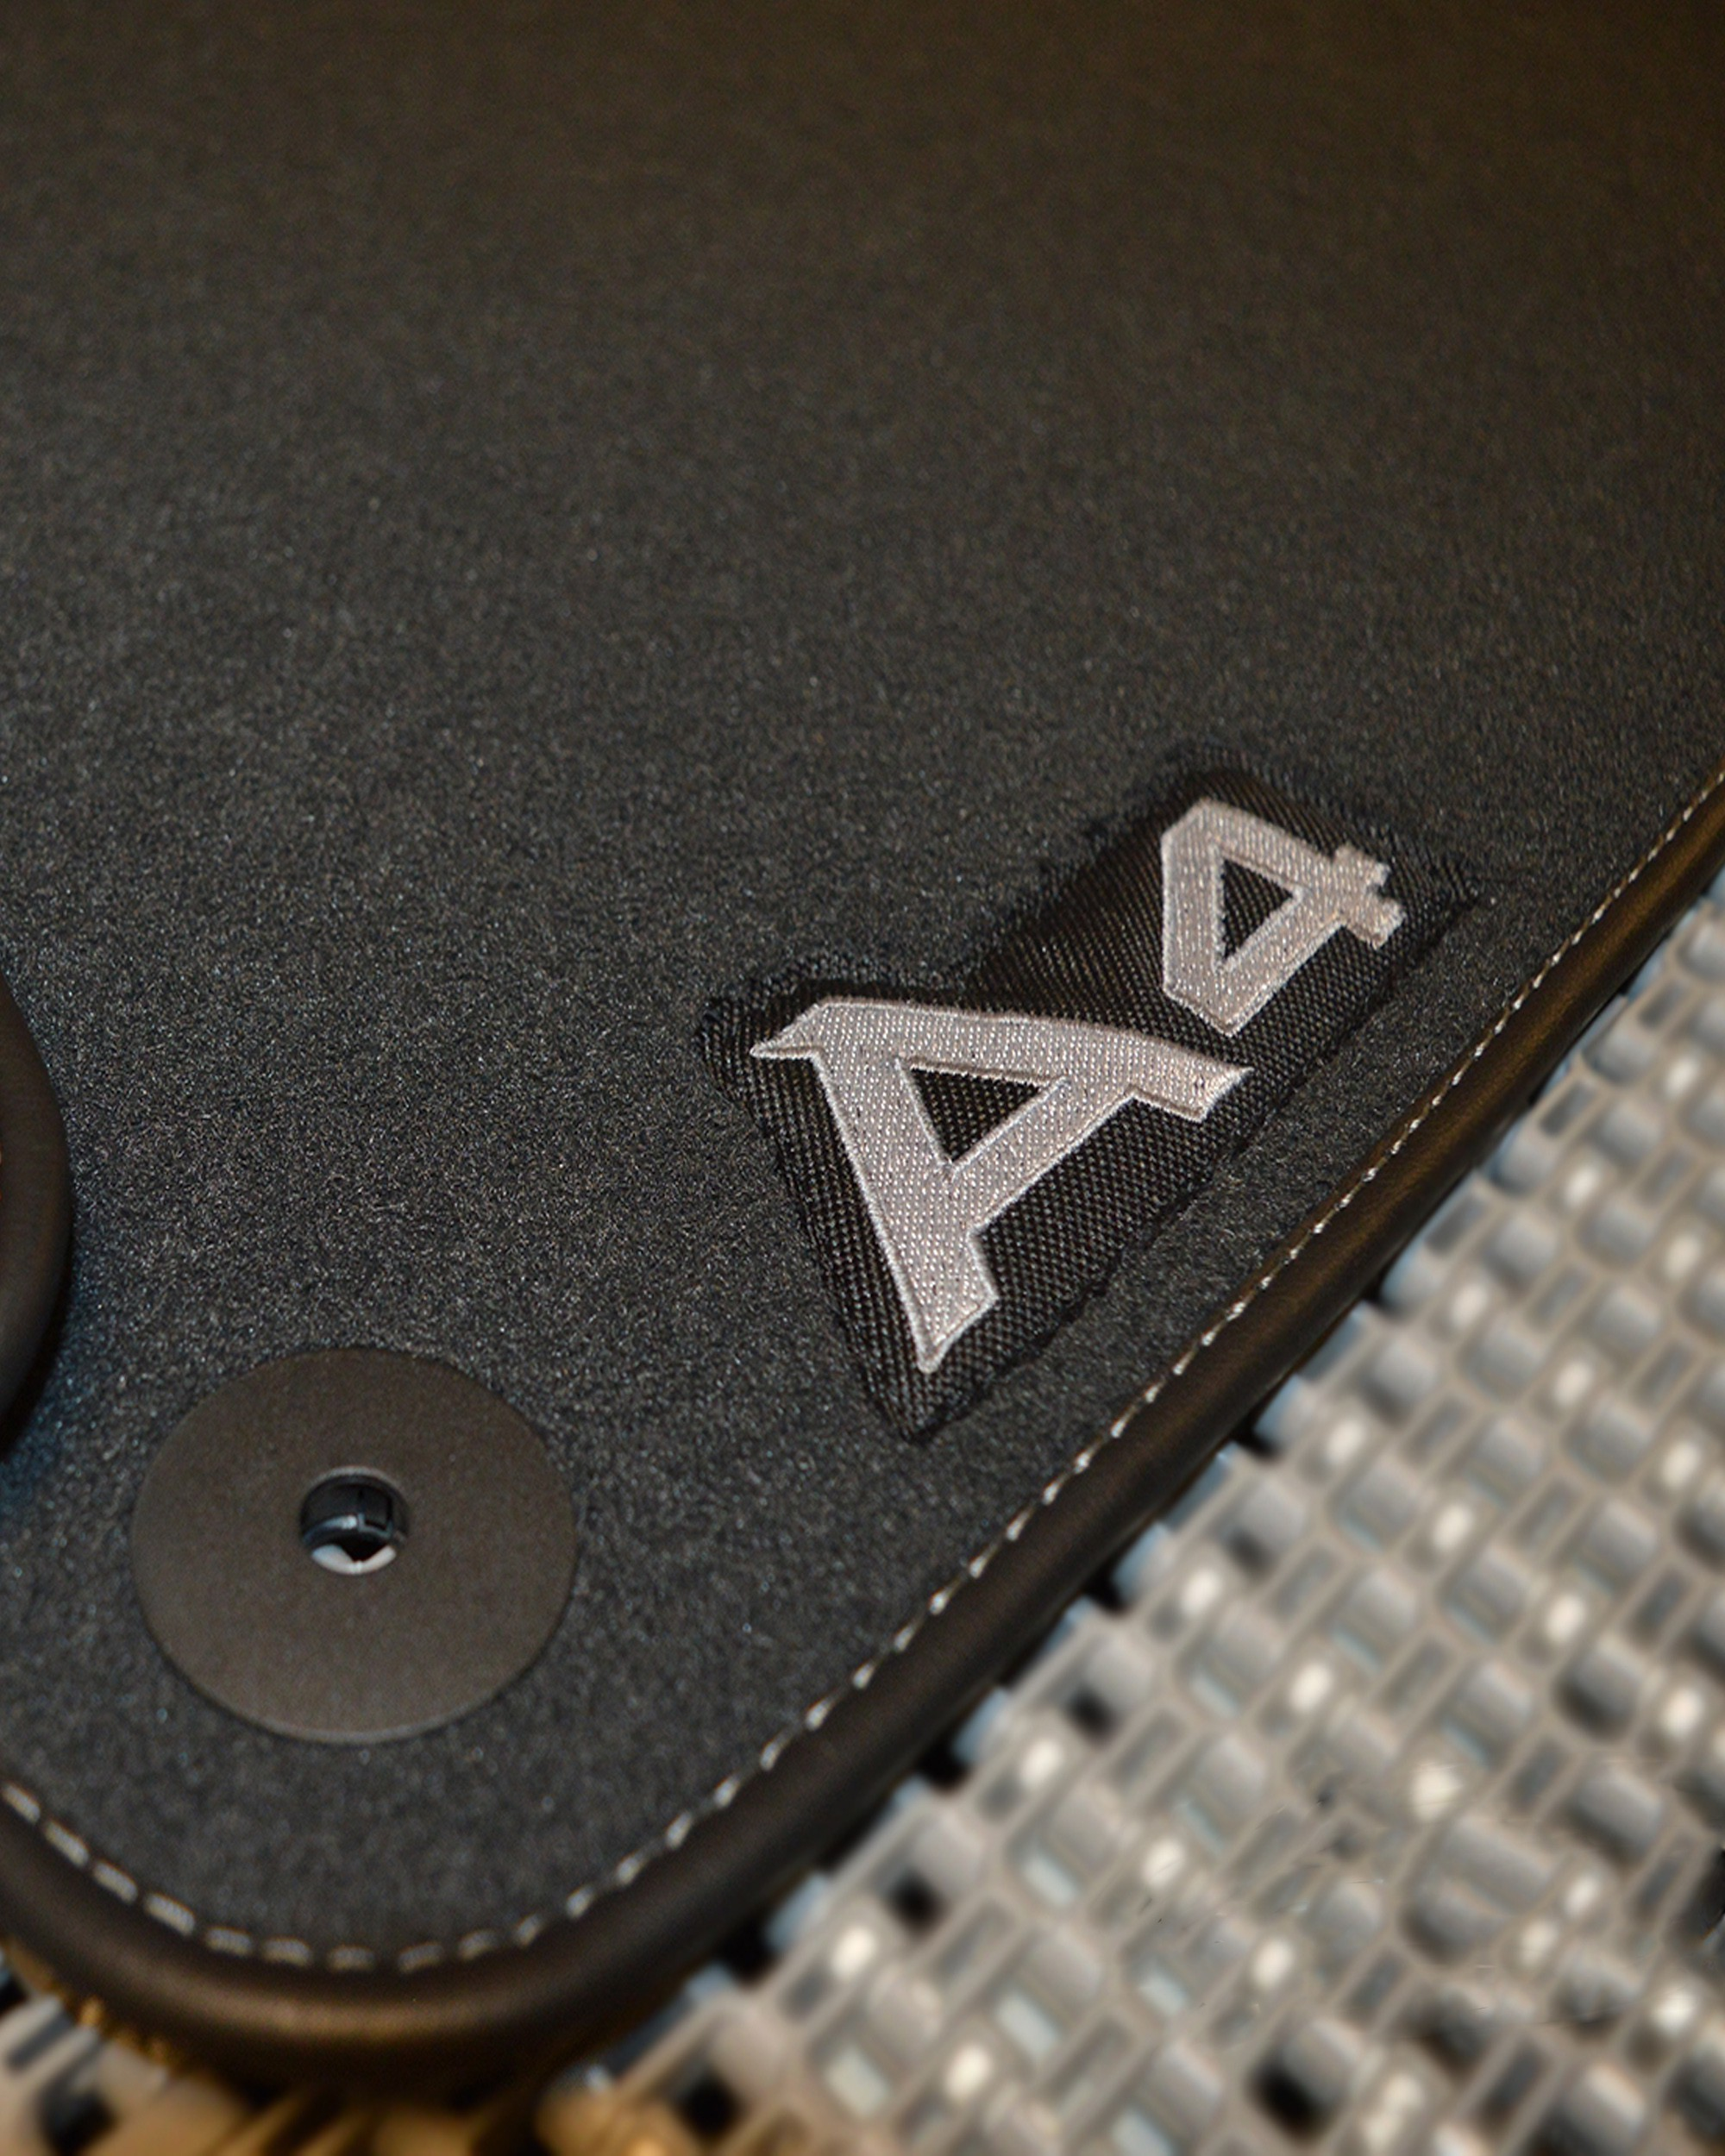 A4 Logo on mats close up